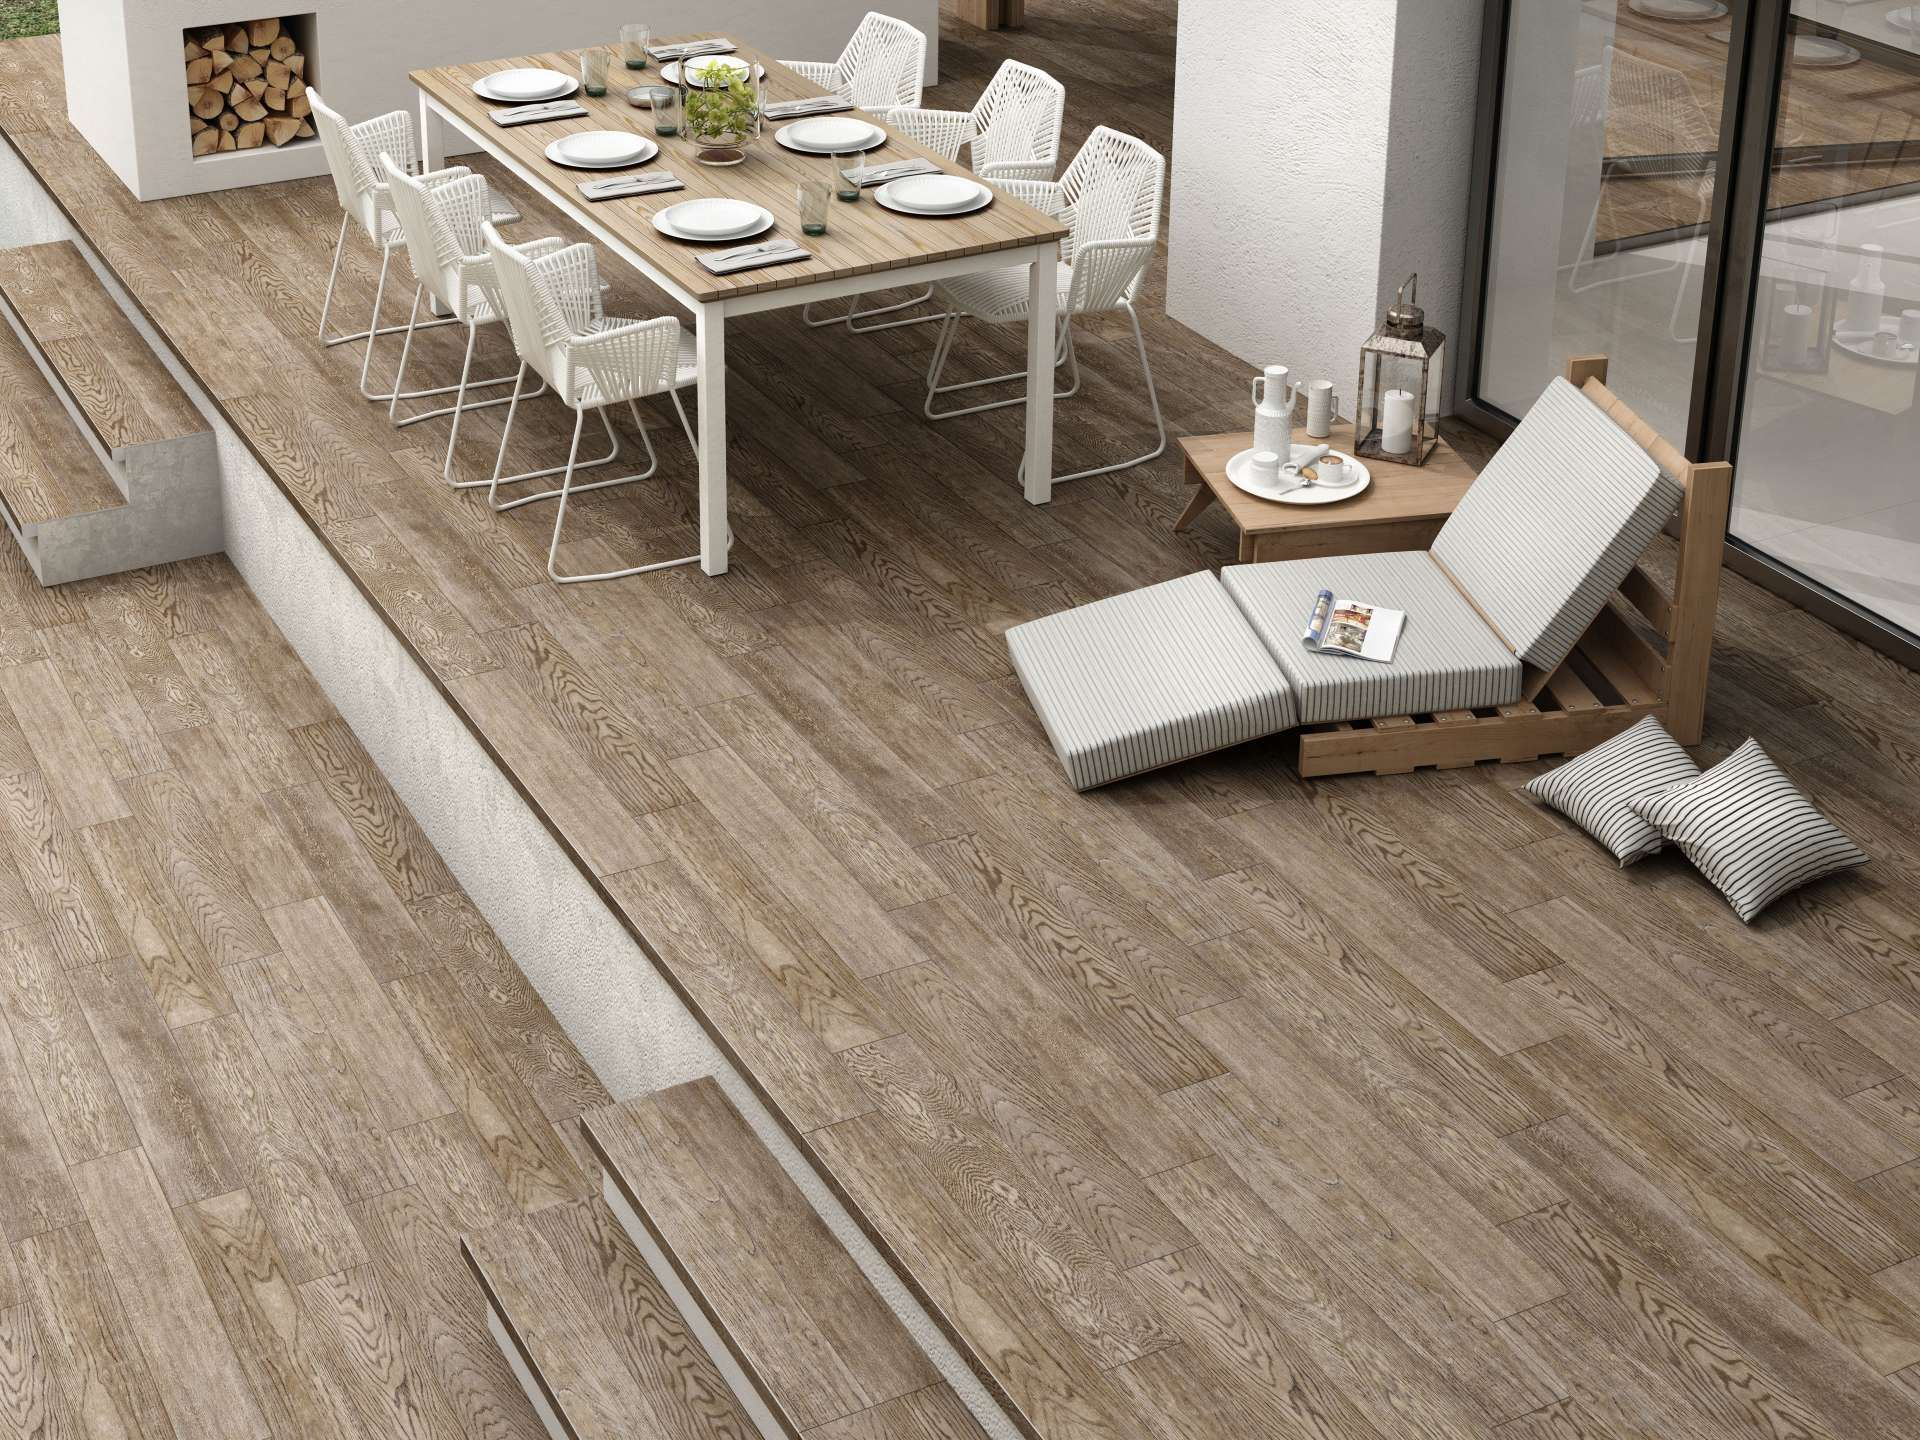 Outdoor in wood effect non slip floor tile supplied by exto for outdoor in wood effect non slip floor tile supplied by exto dailygadgetfo Images